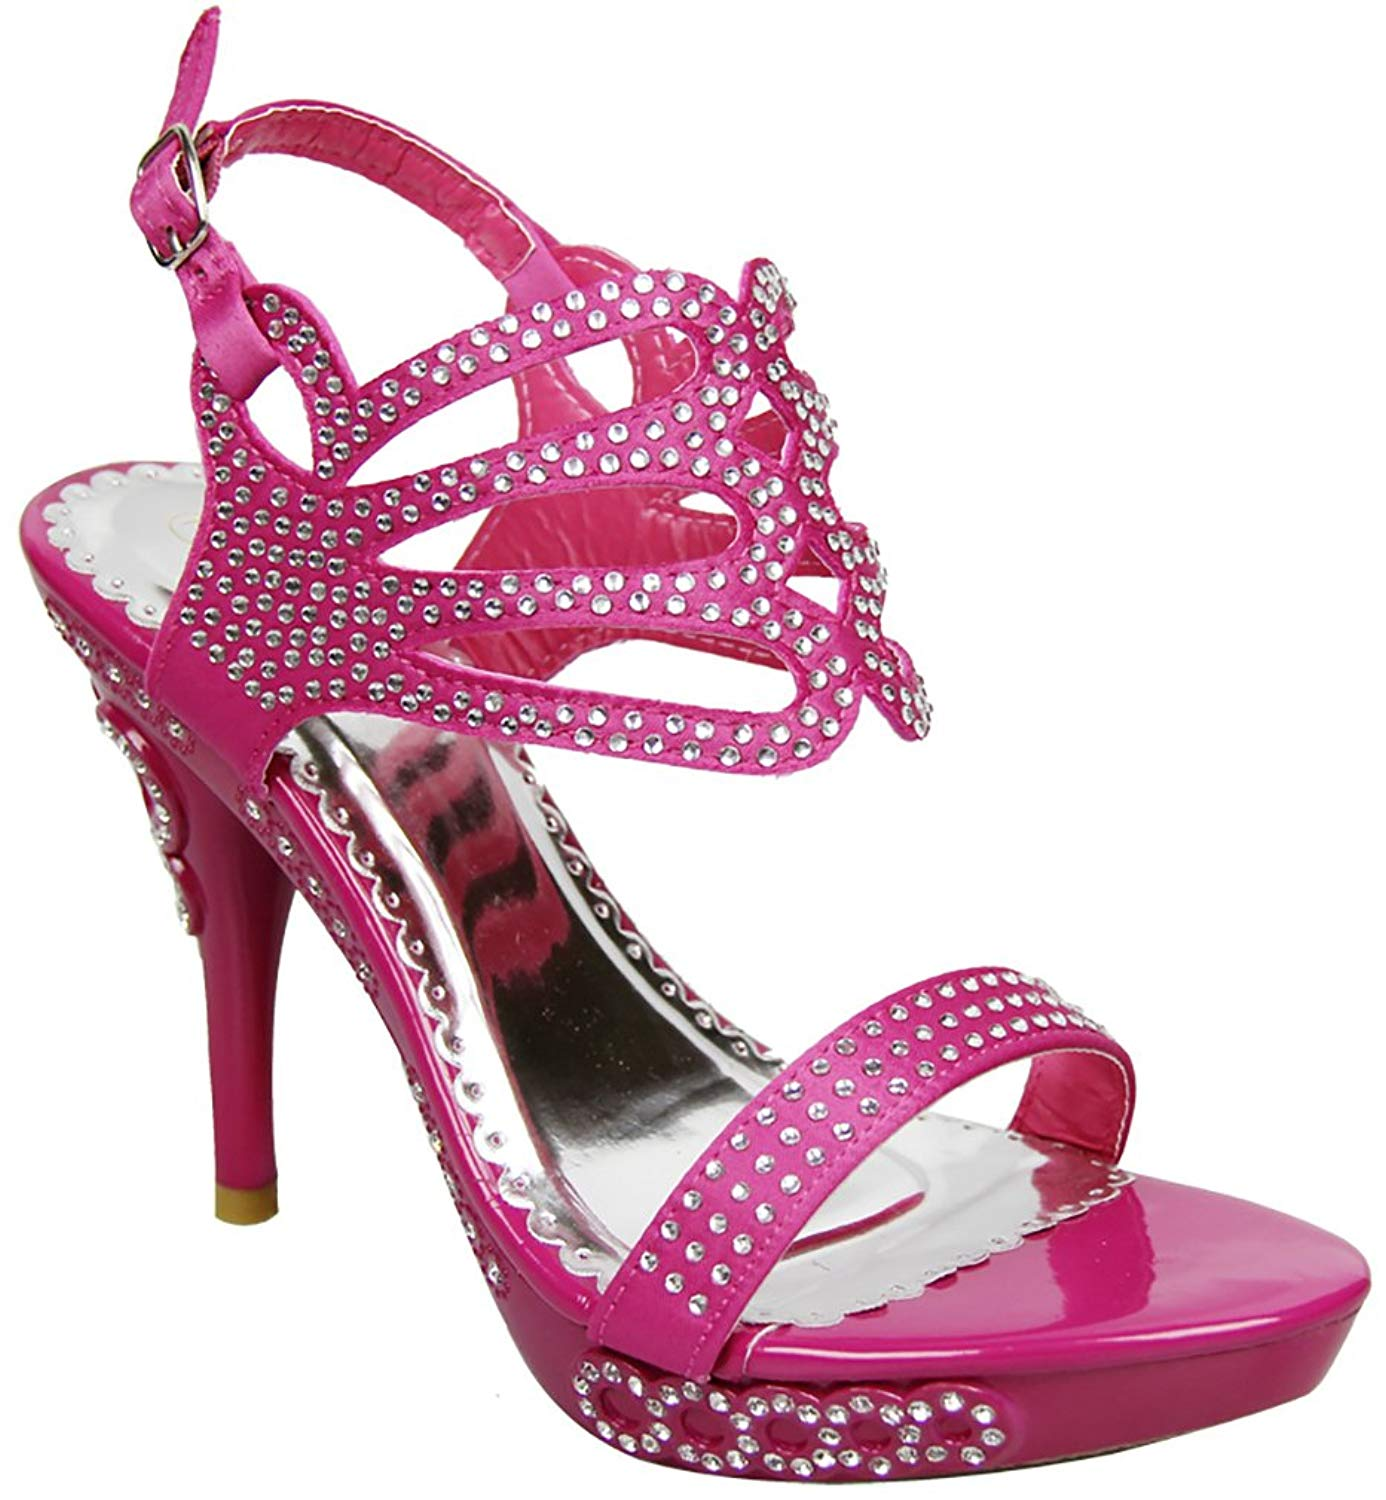 d5023952f92 Get Quotations · Fourever Funky Jeweled Open Toe Strappy Rhinestone Platform  High Heel Sandal Shoes